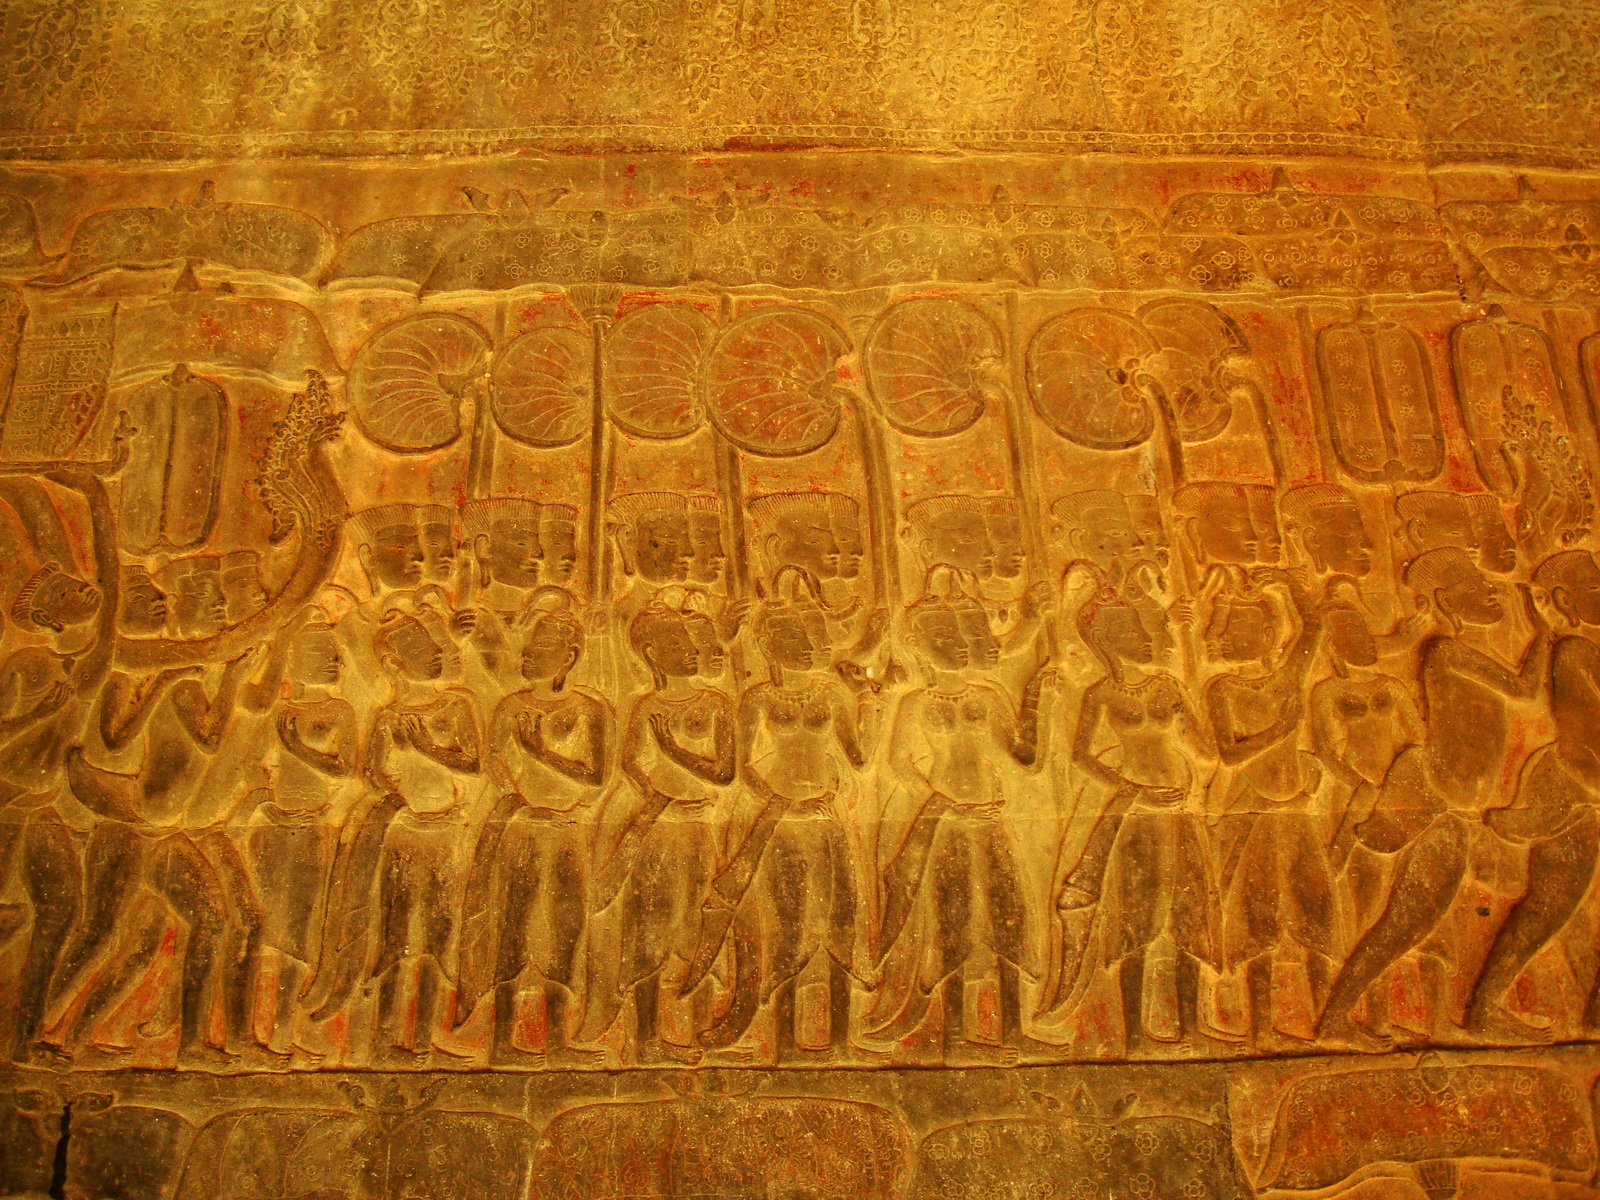 Angkor Wat Bas relief S Gallery E Wing Heavens and Hells 42